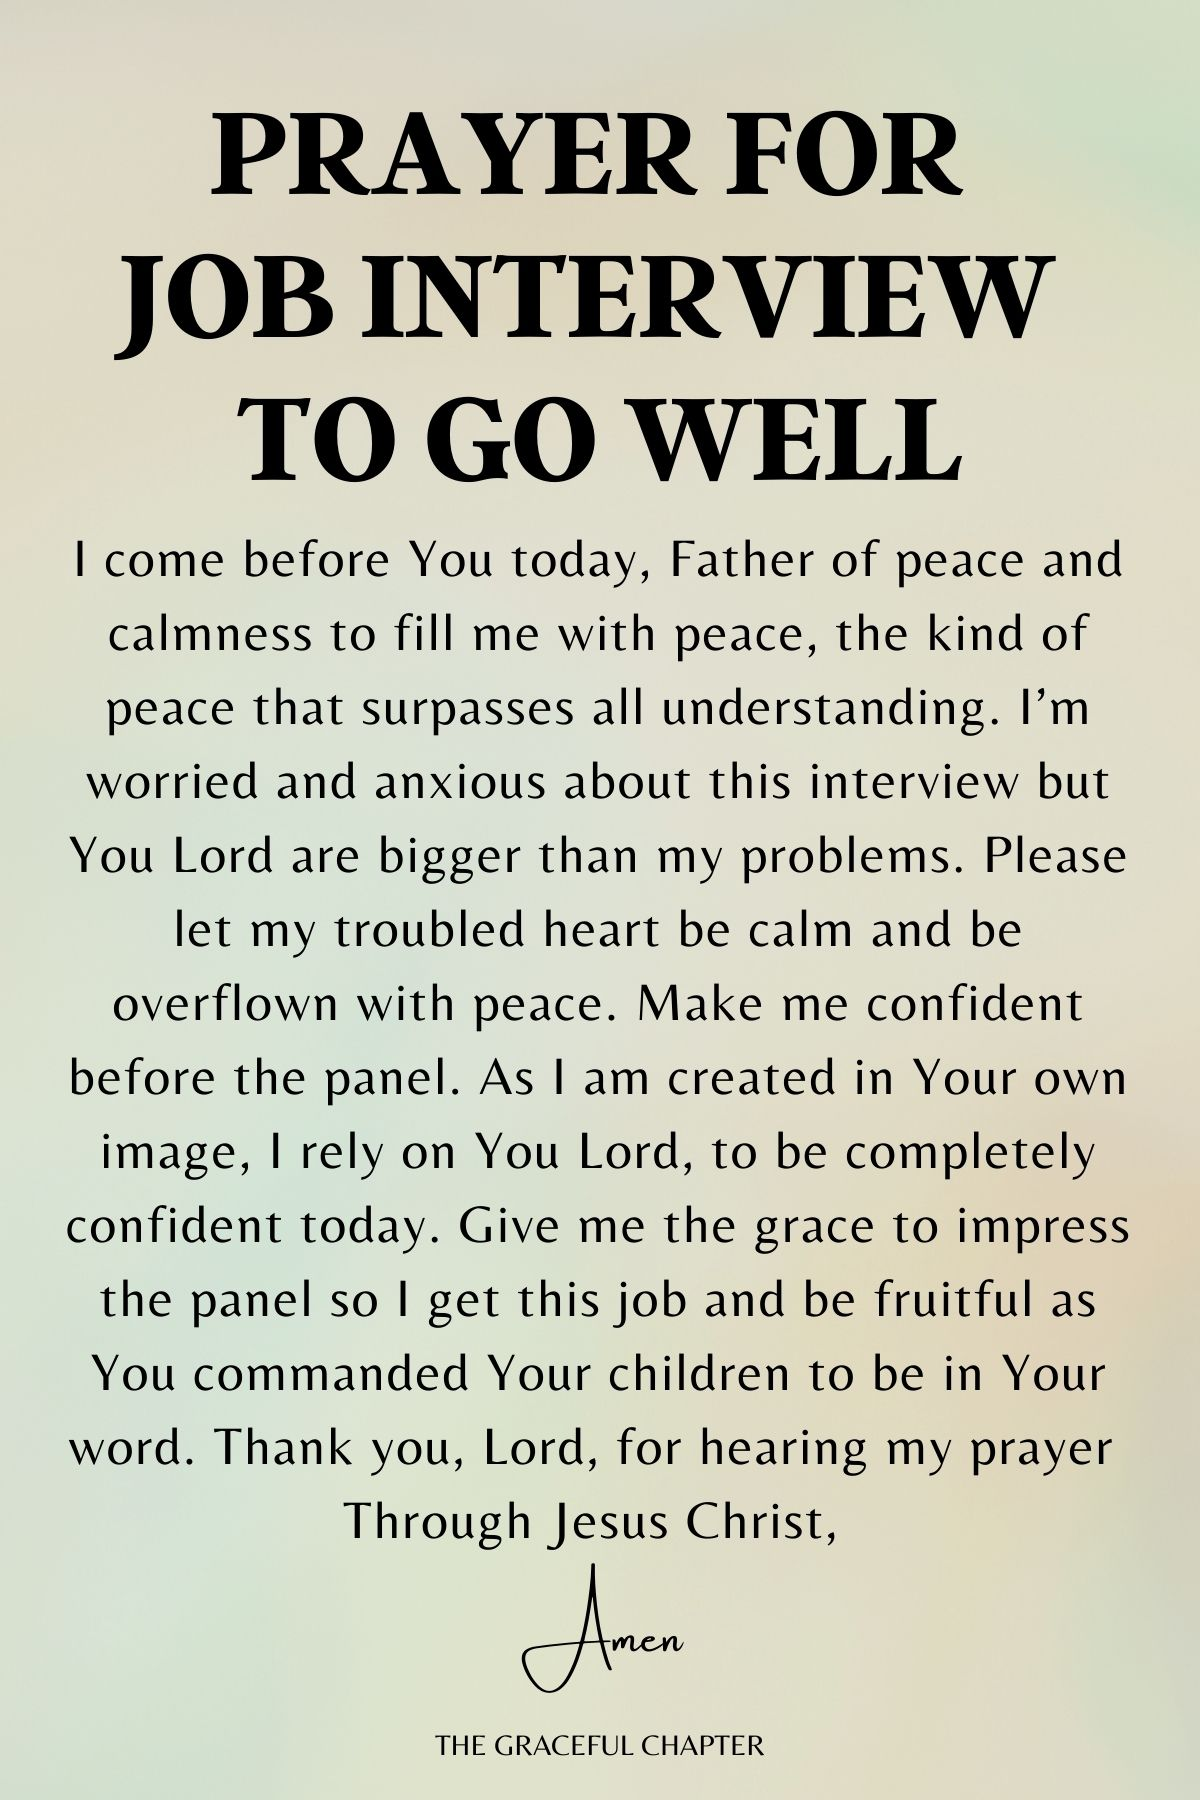 Prayer for job interview to go well